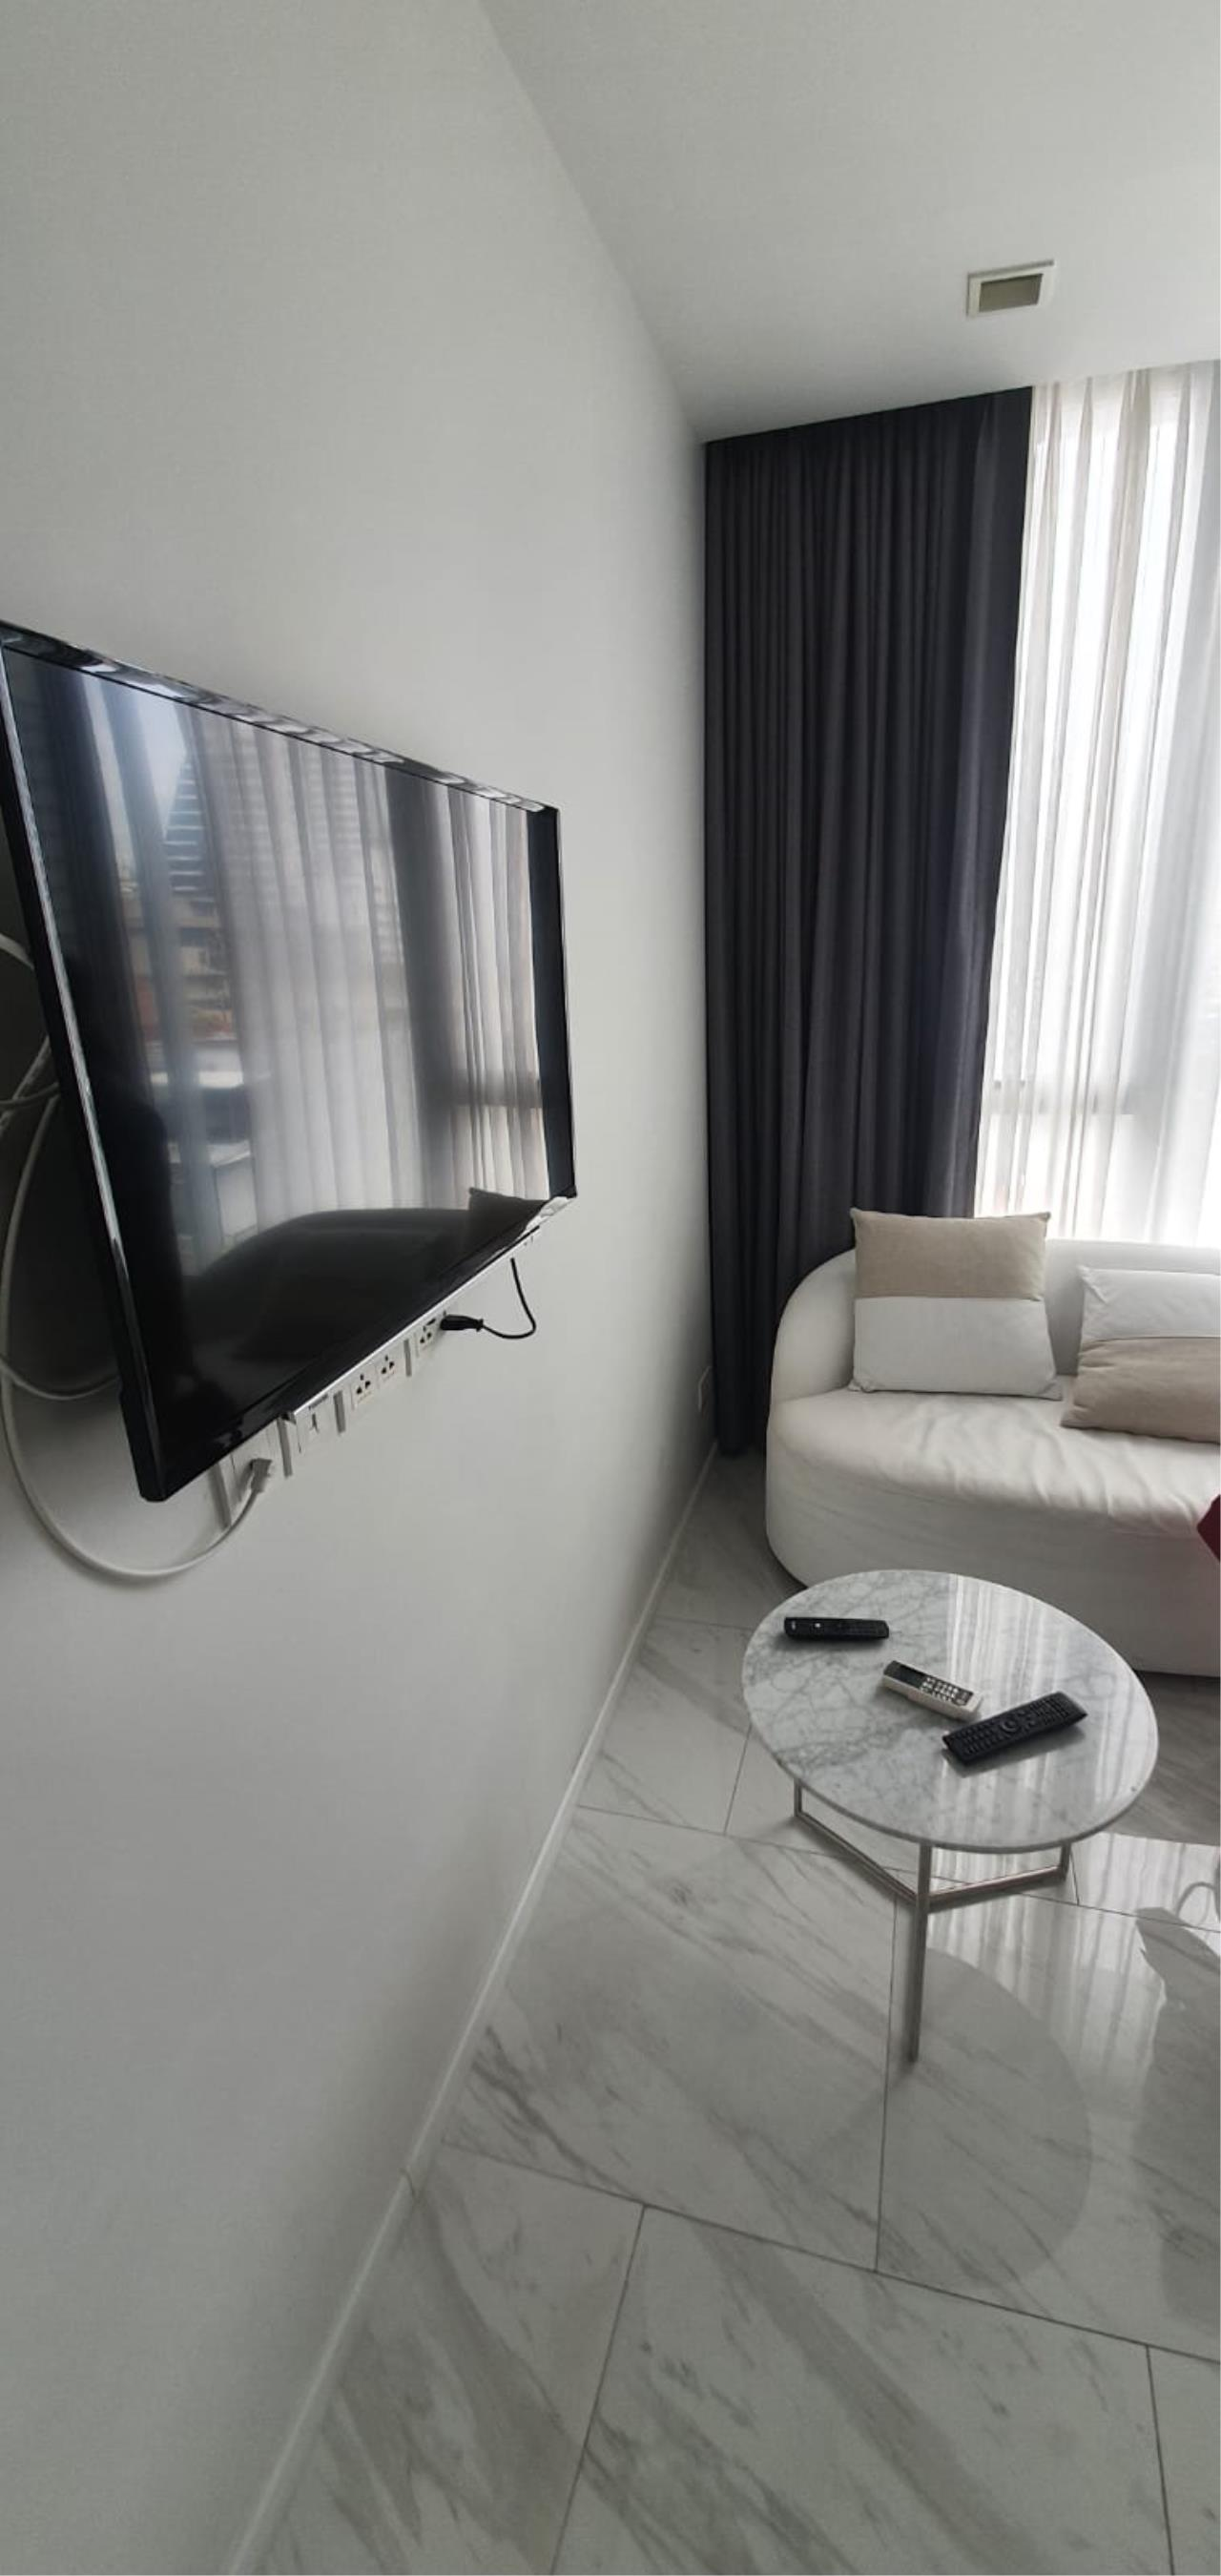 Bestbkkcondos Agency's Hyde 11 - 35 Sqm - for rent: 18000THB/MONTH - 1 bedroom, 1 bathroom 4